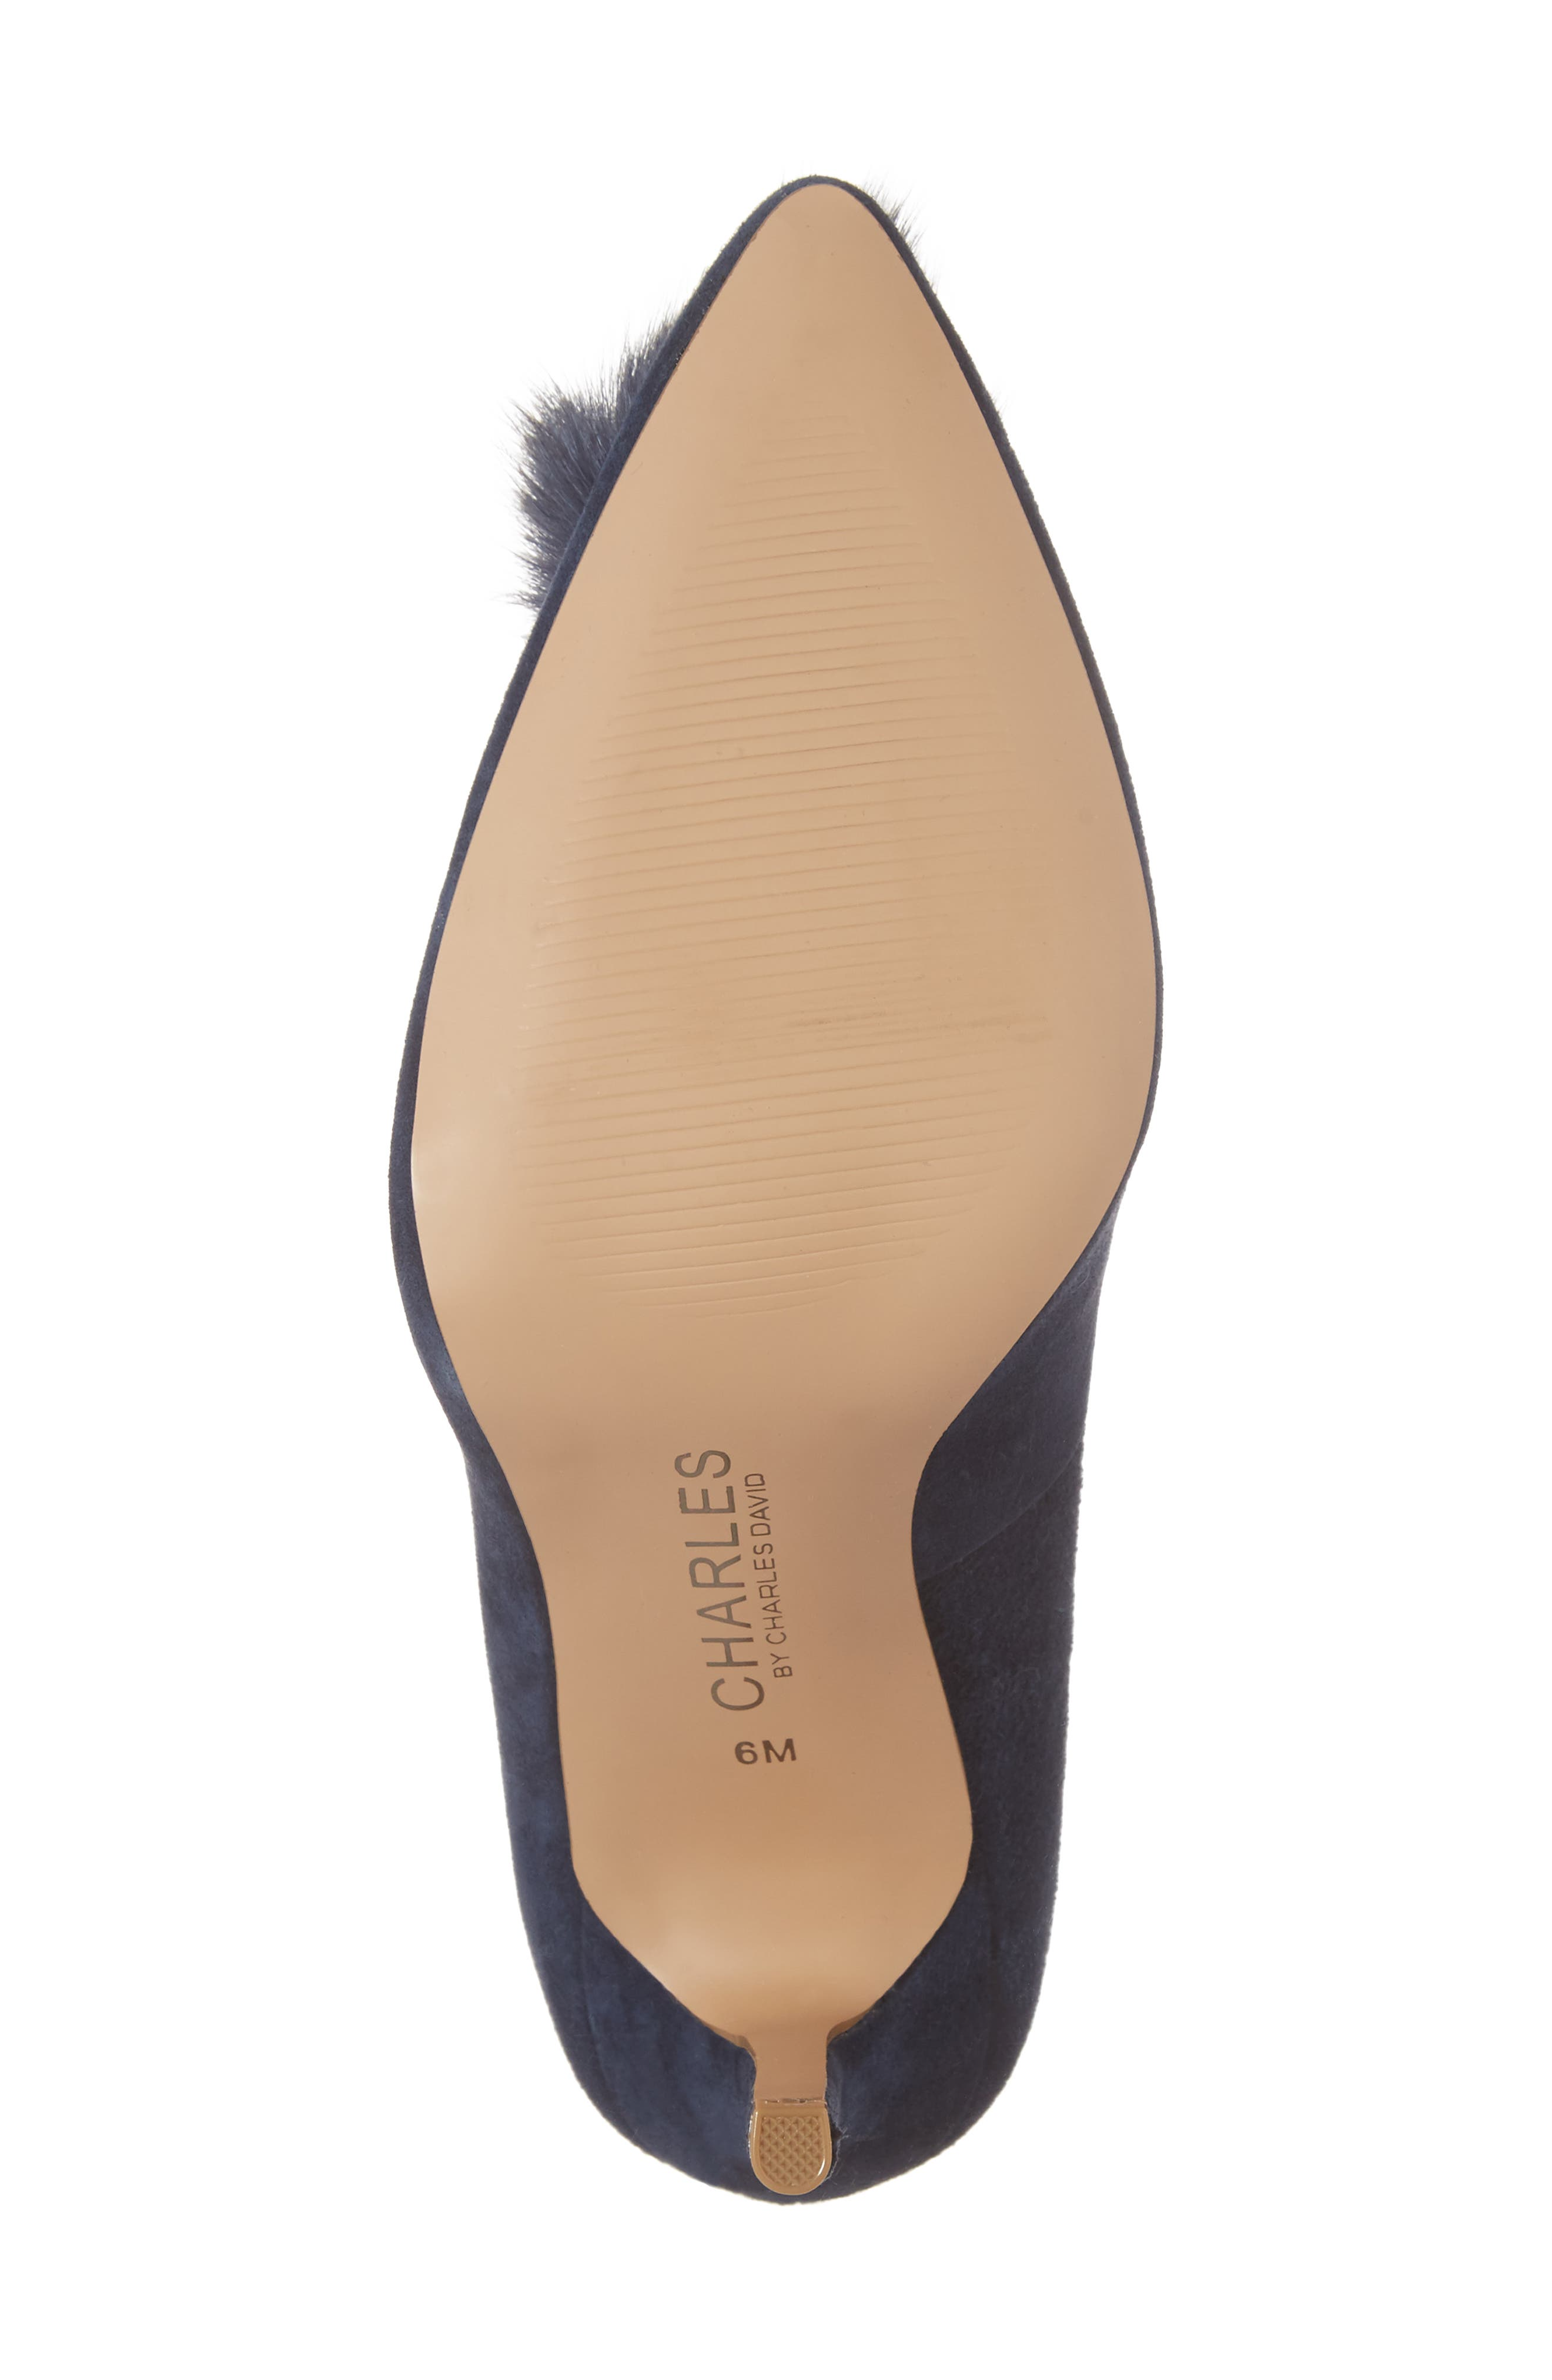 Pixie Pump with Genuine Fox Fur Pom,                             Alternate thumbnail 6, color,                             Midnight Suede